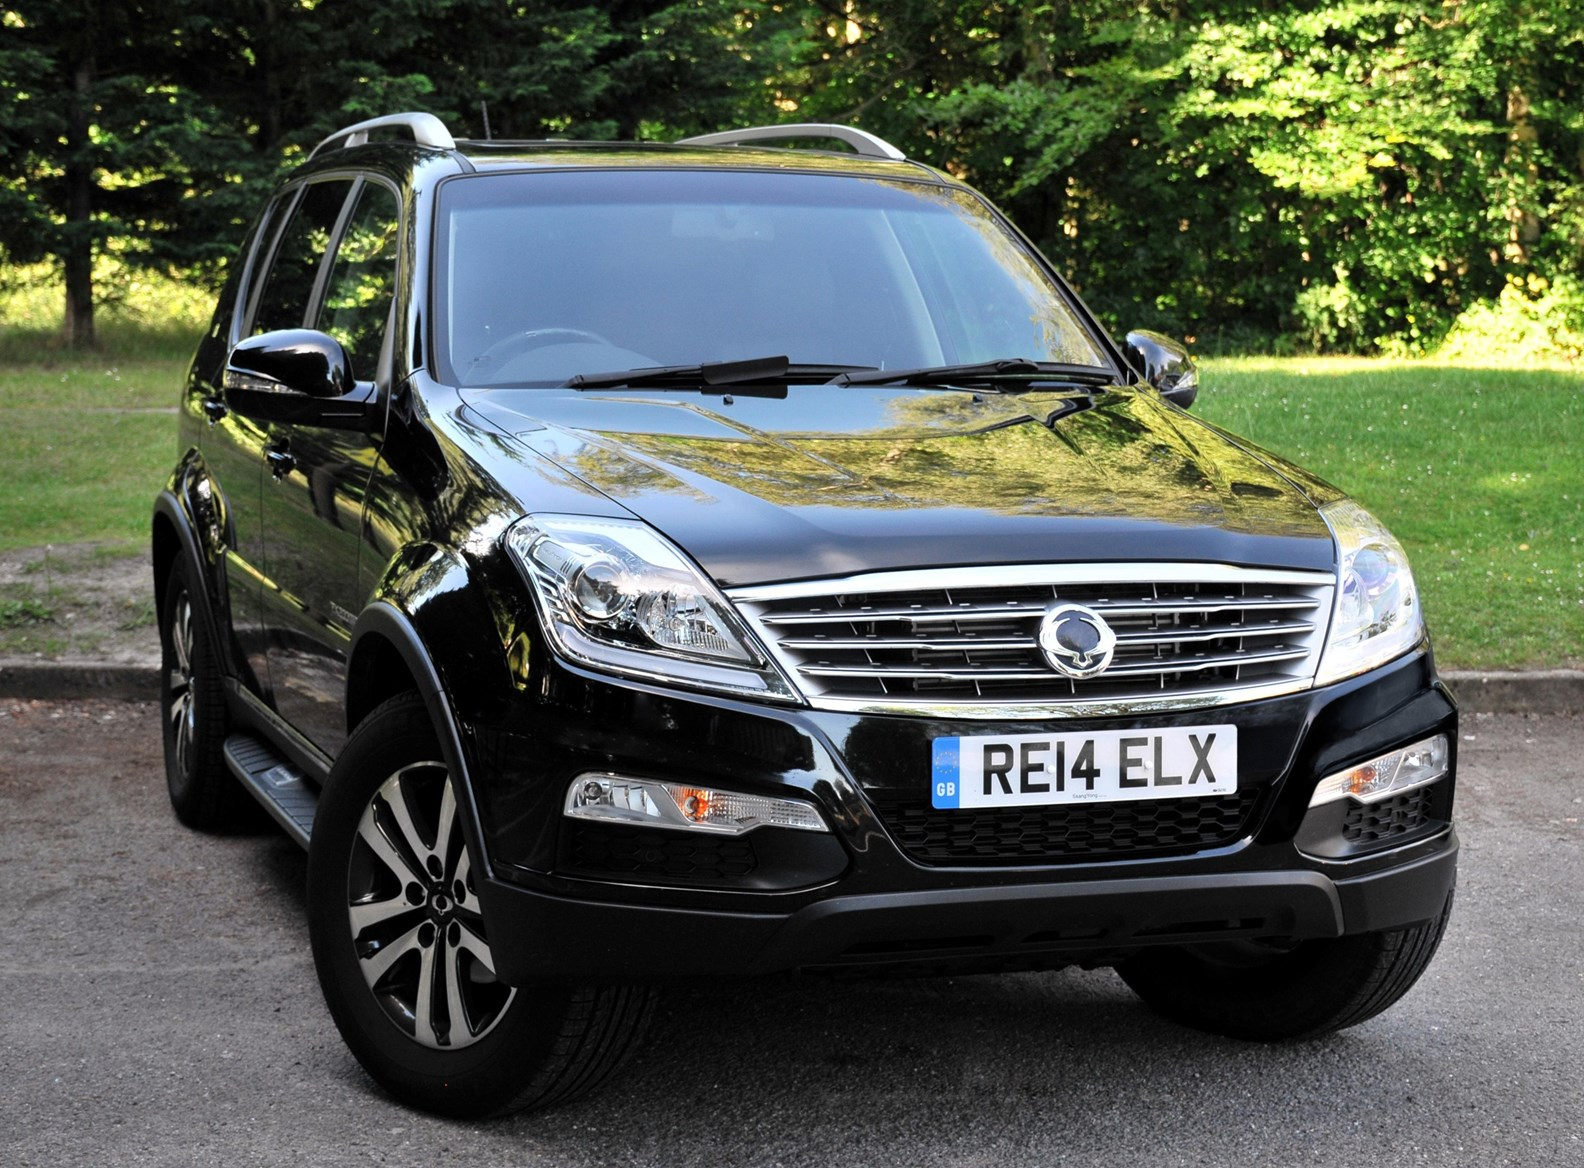 ssangyong rexton w estate 2014 2016 photos parkers. Black Bedroom Furniture Sets. Home Design Ideas